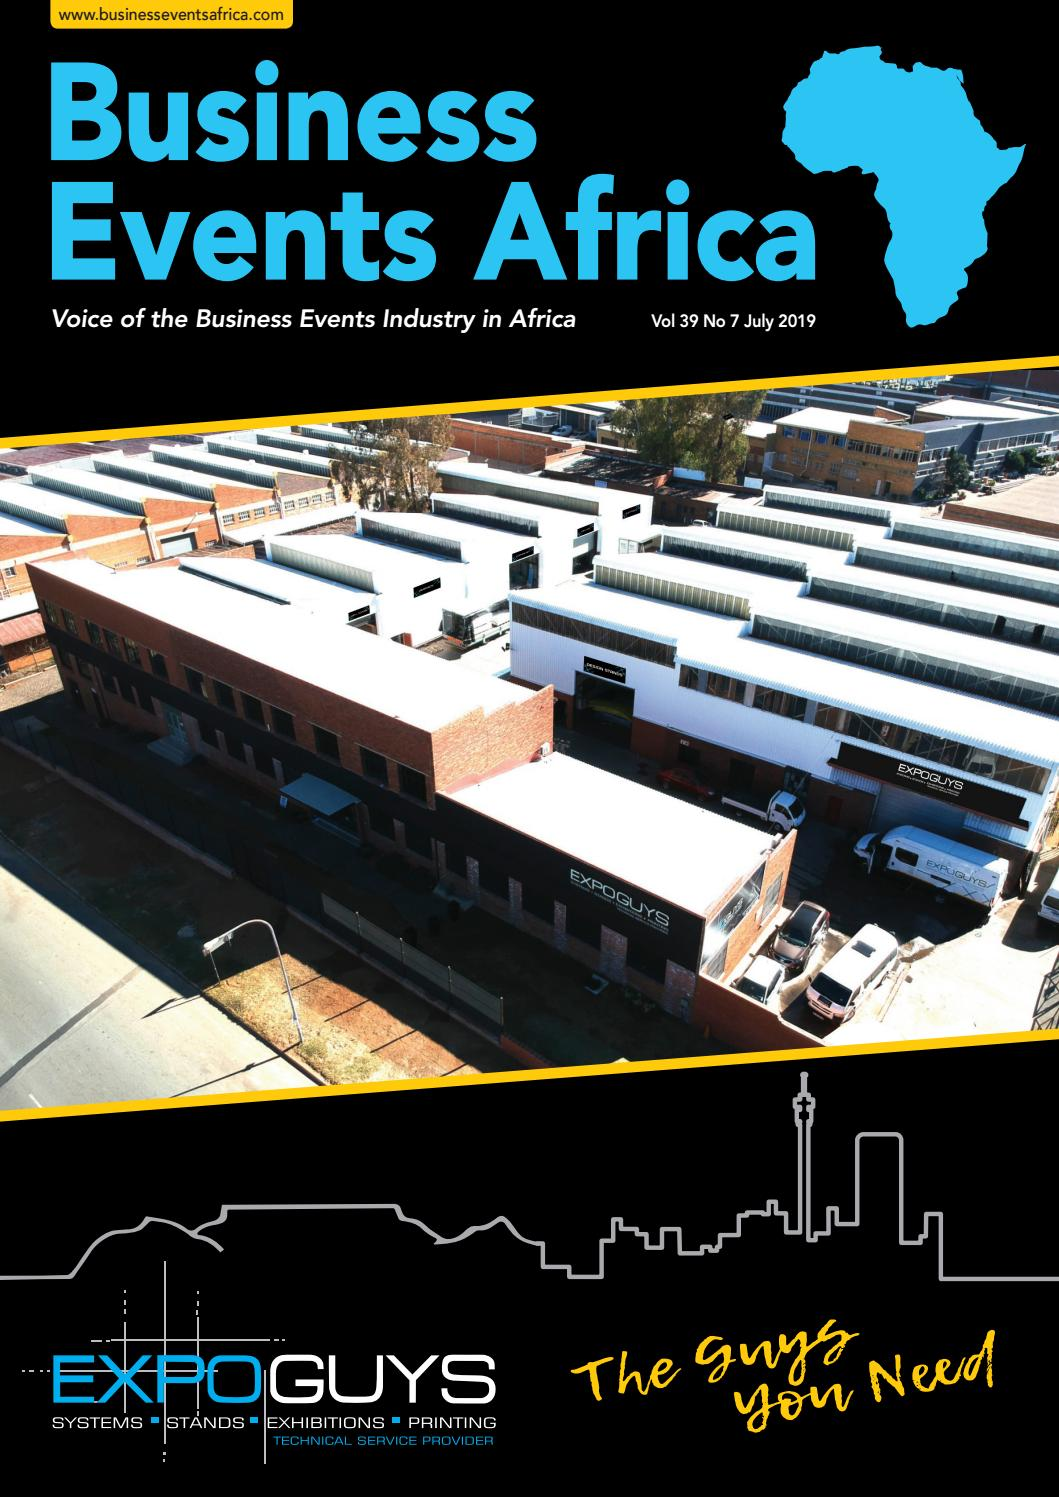 Business Events Africa July 2019 Vol 39 No 7 by Contact